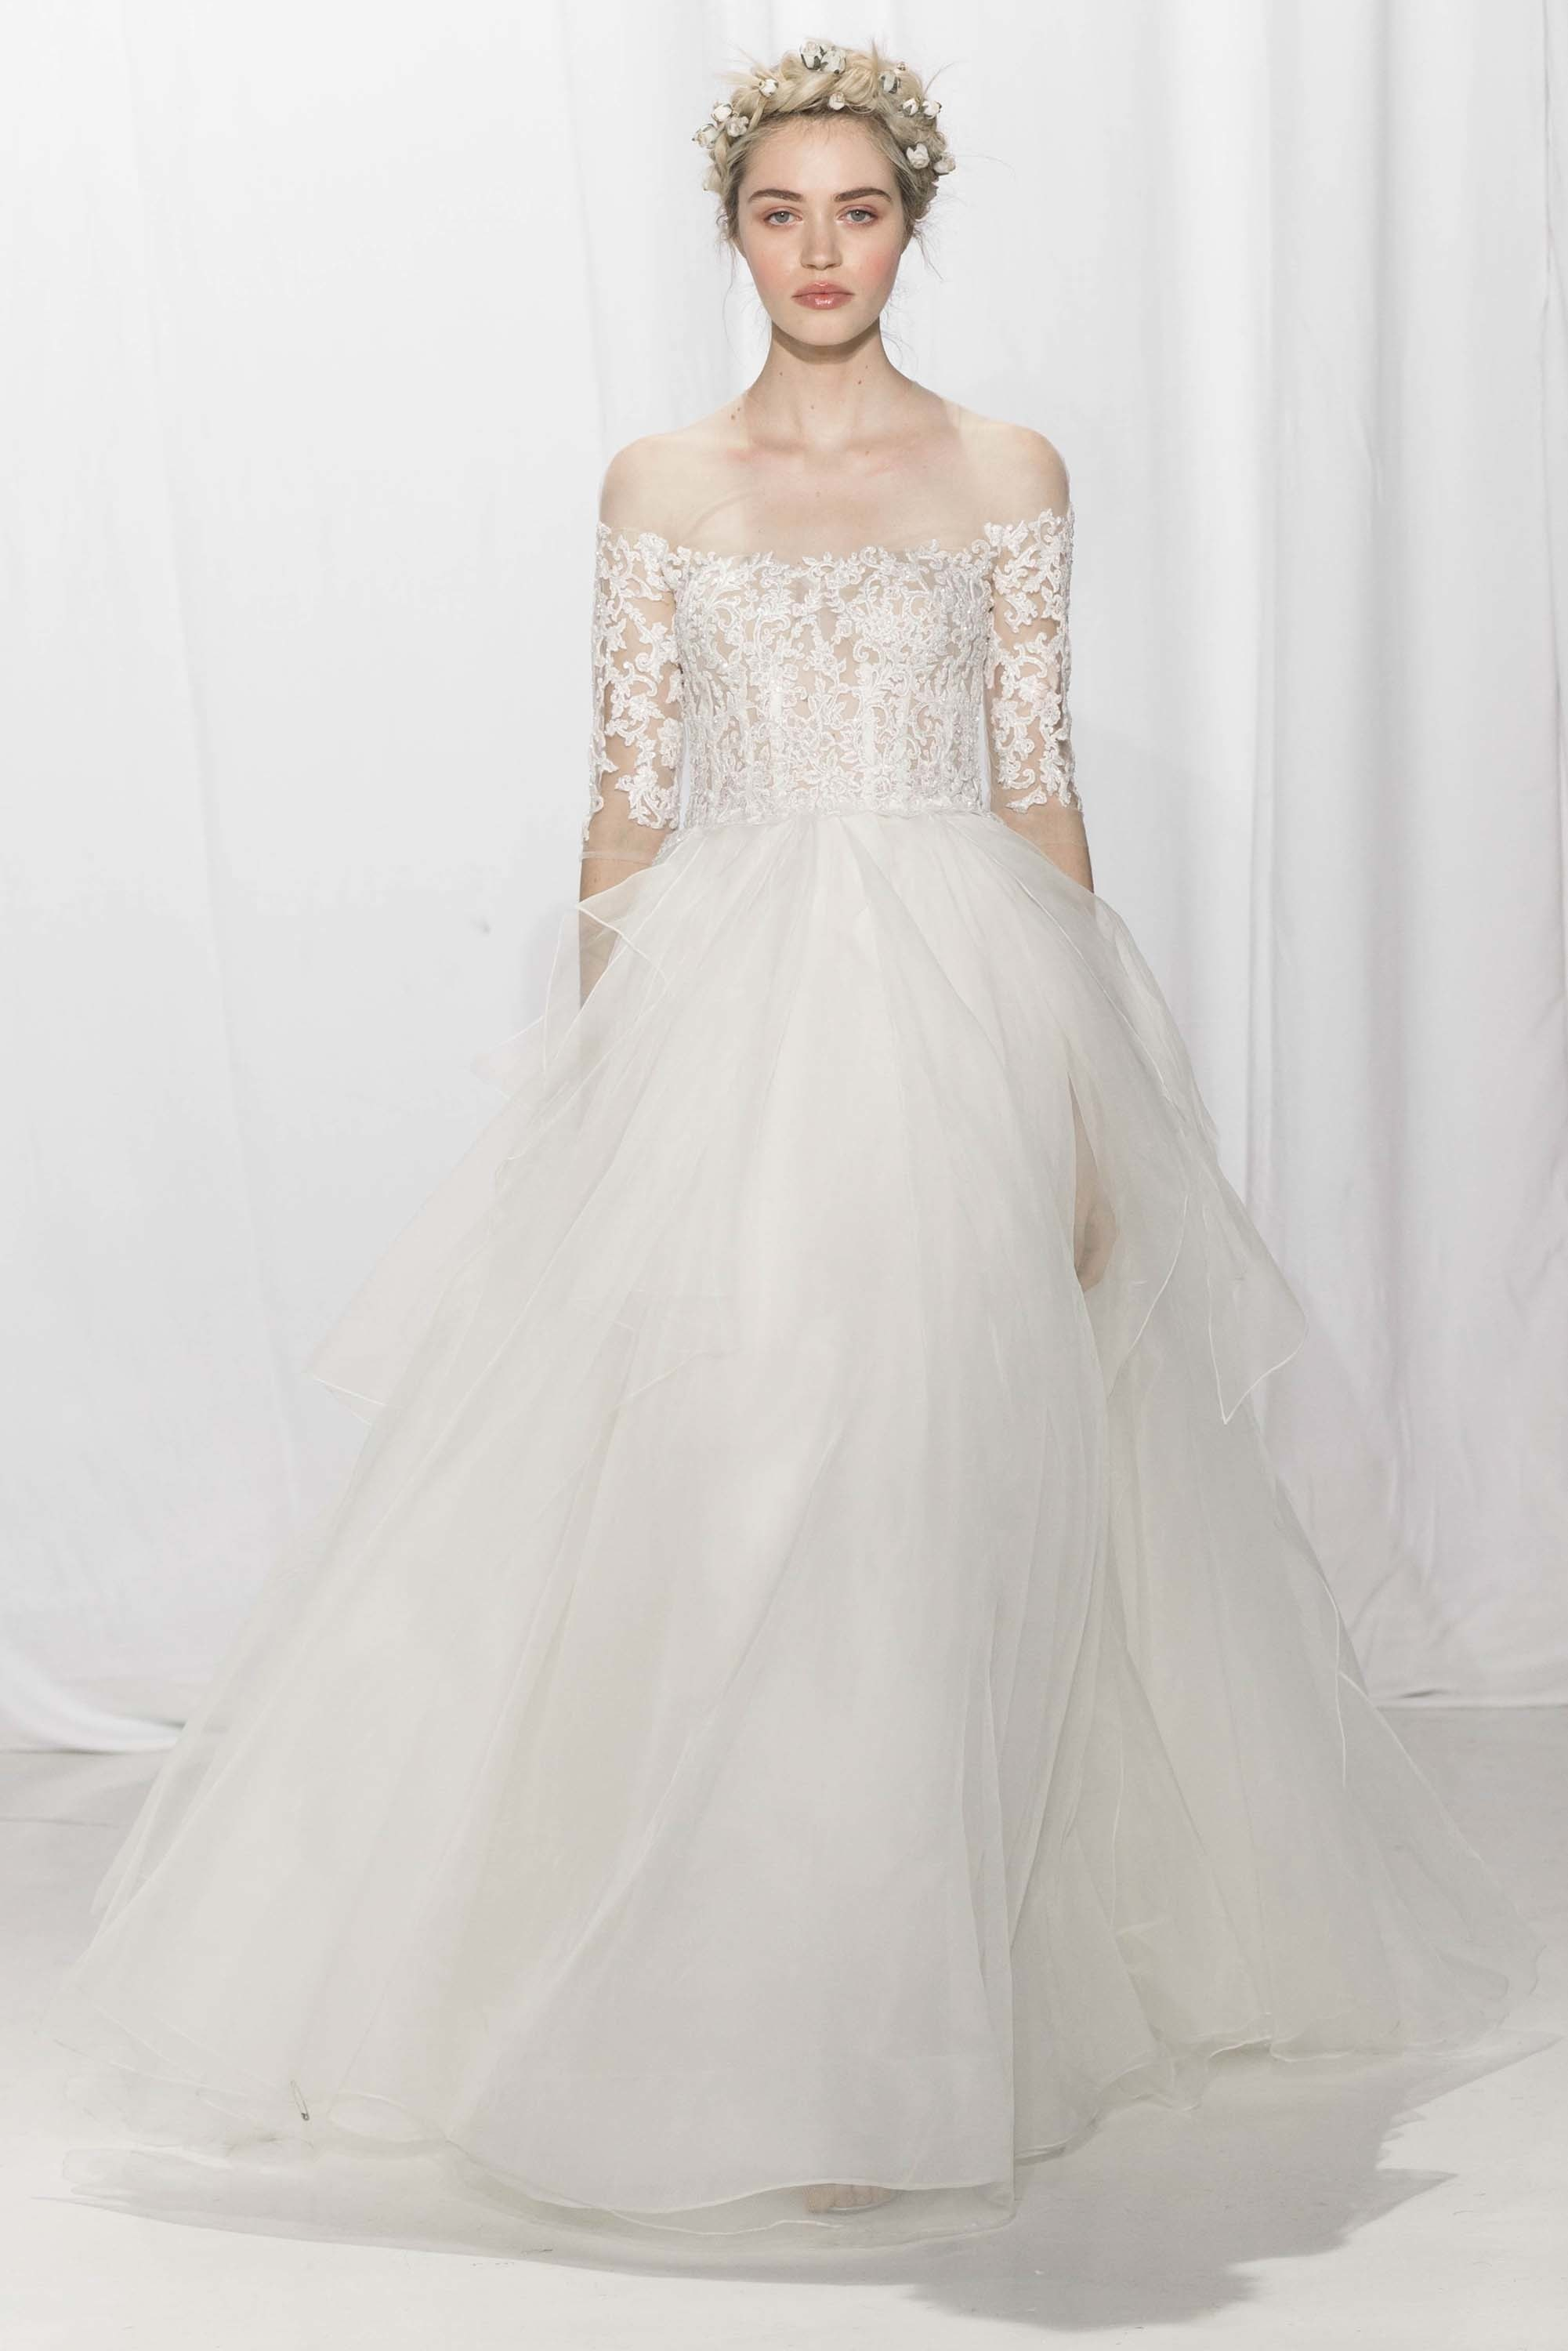 LOVE FIND CO. // The hottest bridal gown trends of 2016 - Reem Acra // Follow @lovefindco on Instagram & Pinterest